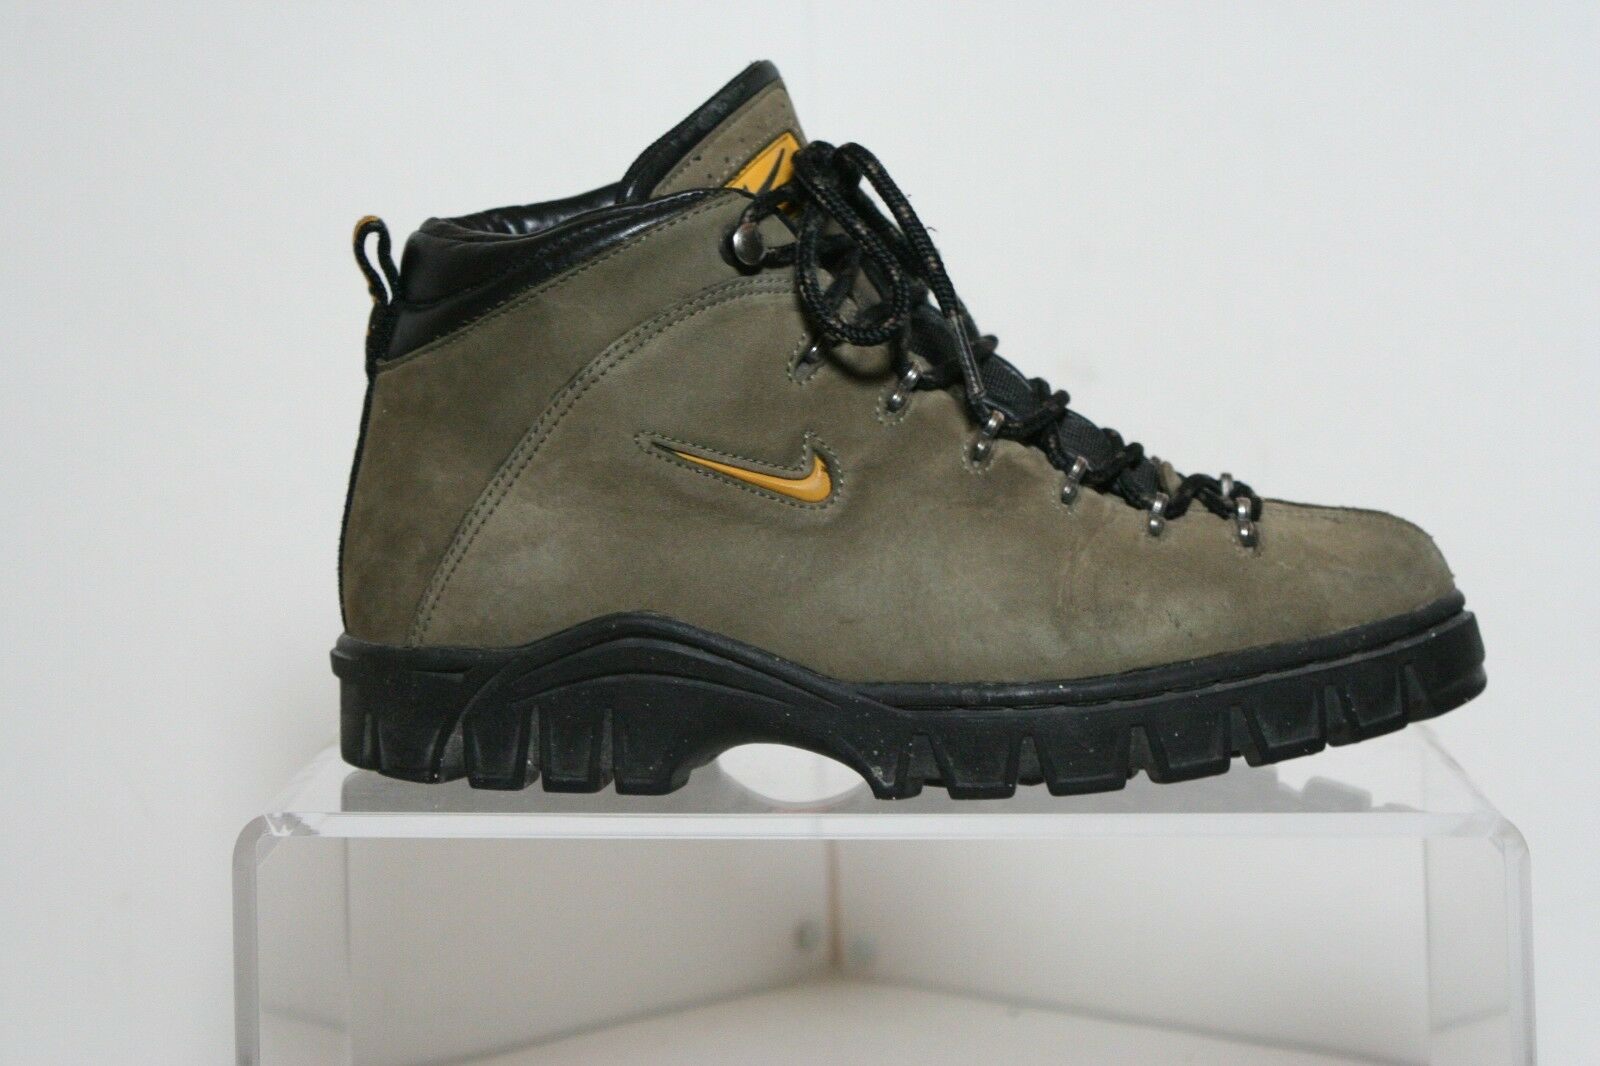 Nike ACG All Condition Gear VTG OG 1998 Hiking Boots Women 9.5 Trail Athletic